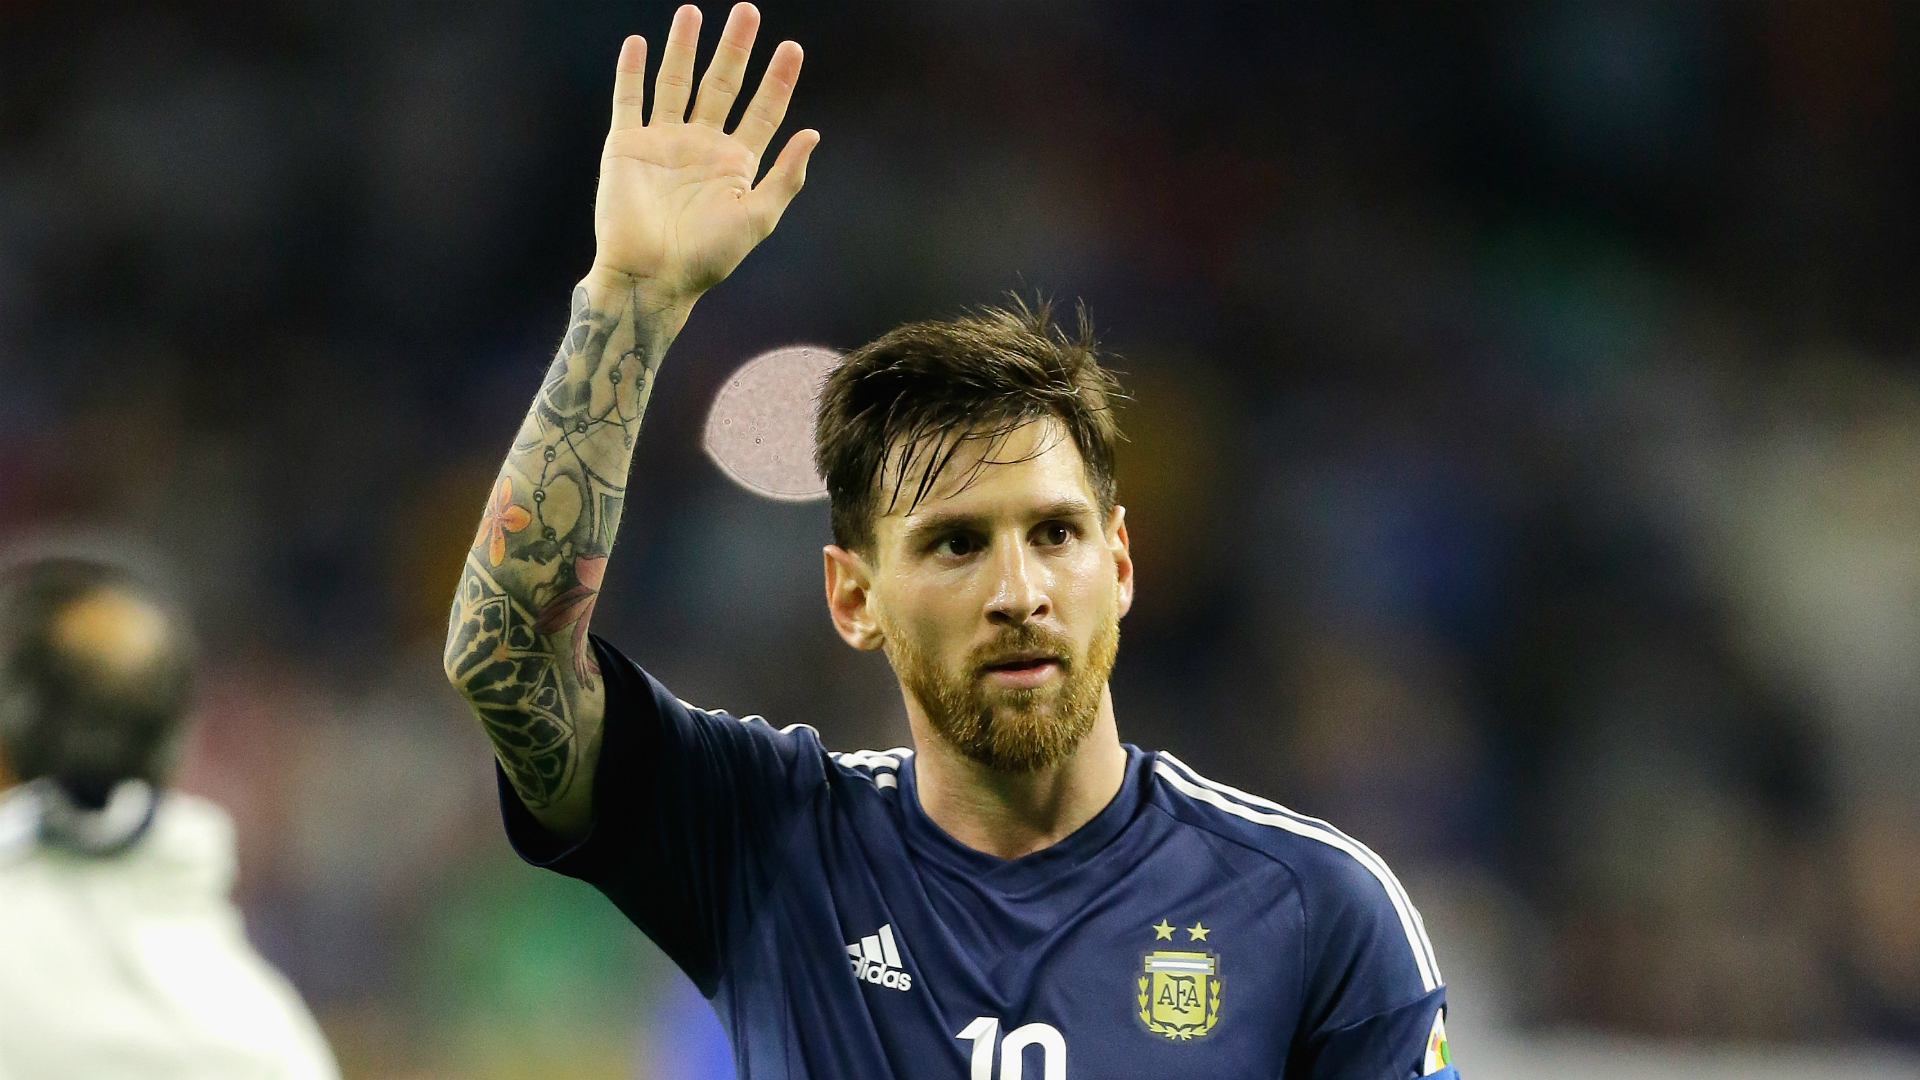 Lionel Messi 2016 Wallpapers | HD Wallpapers Images Pictures ...